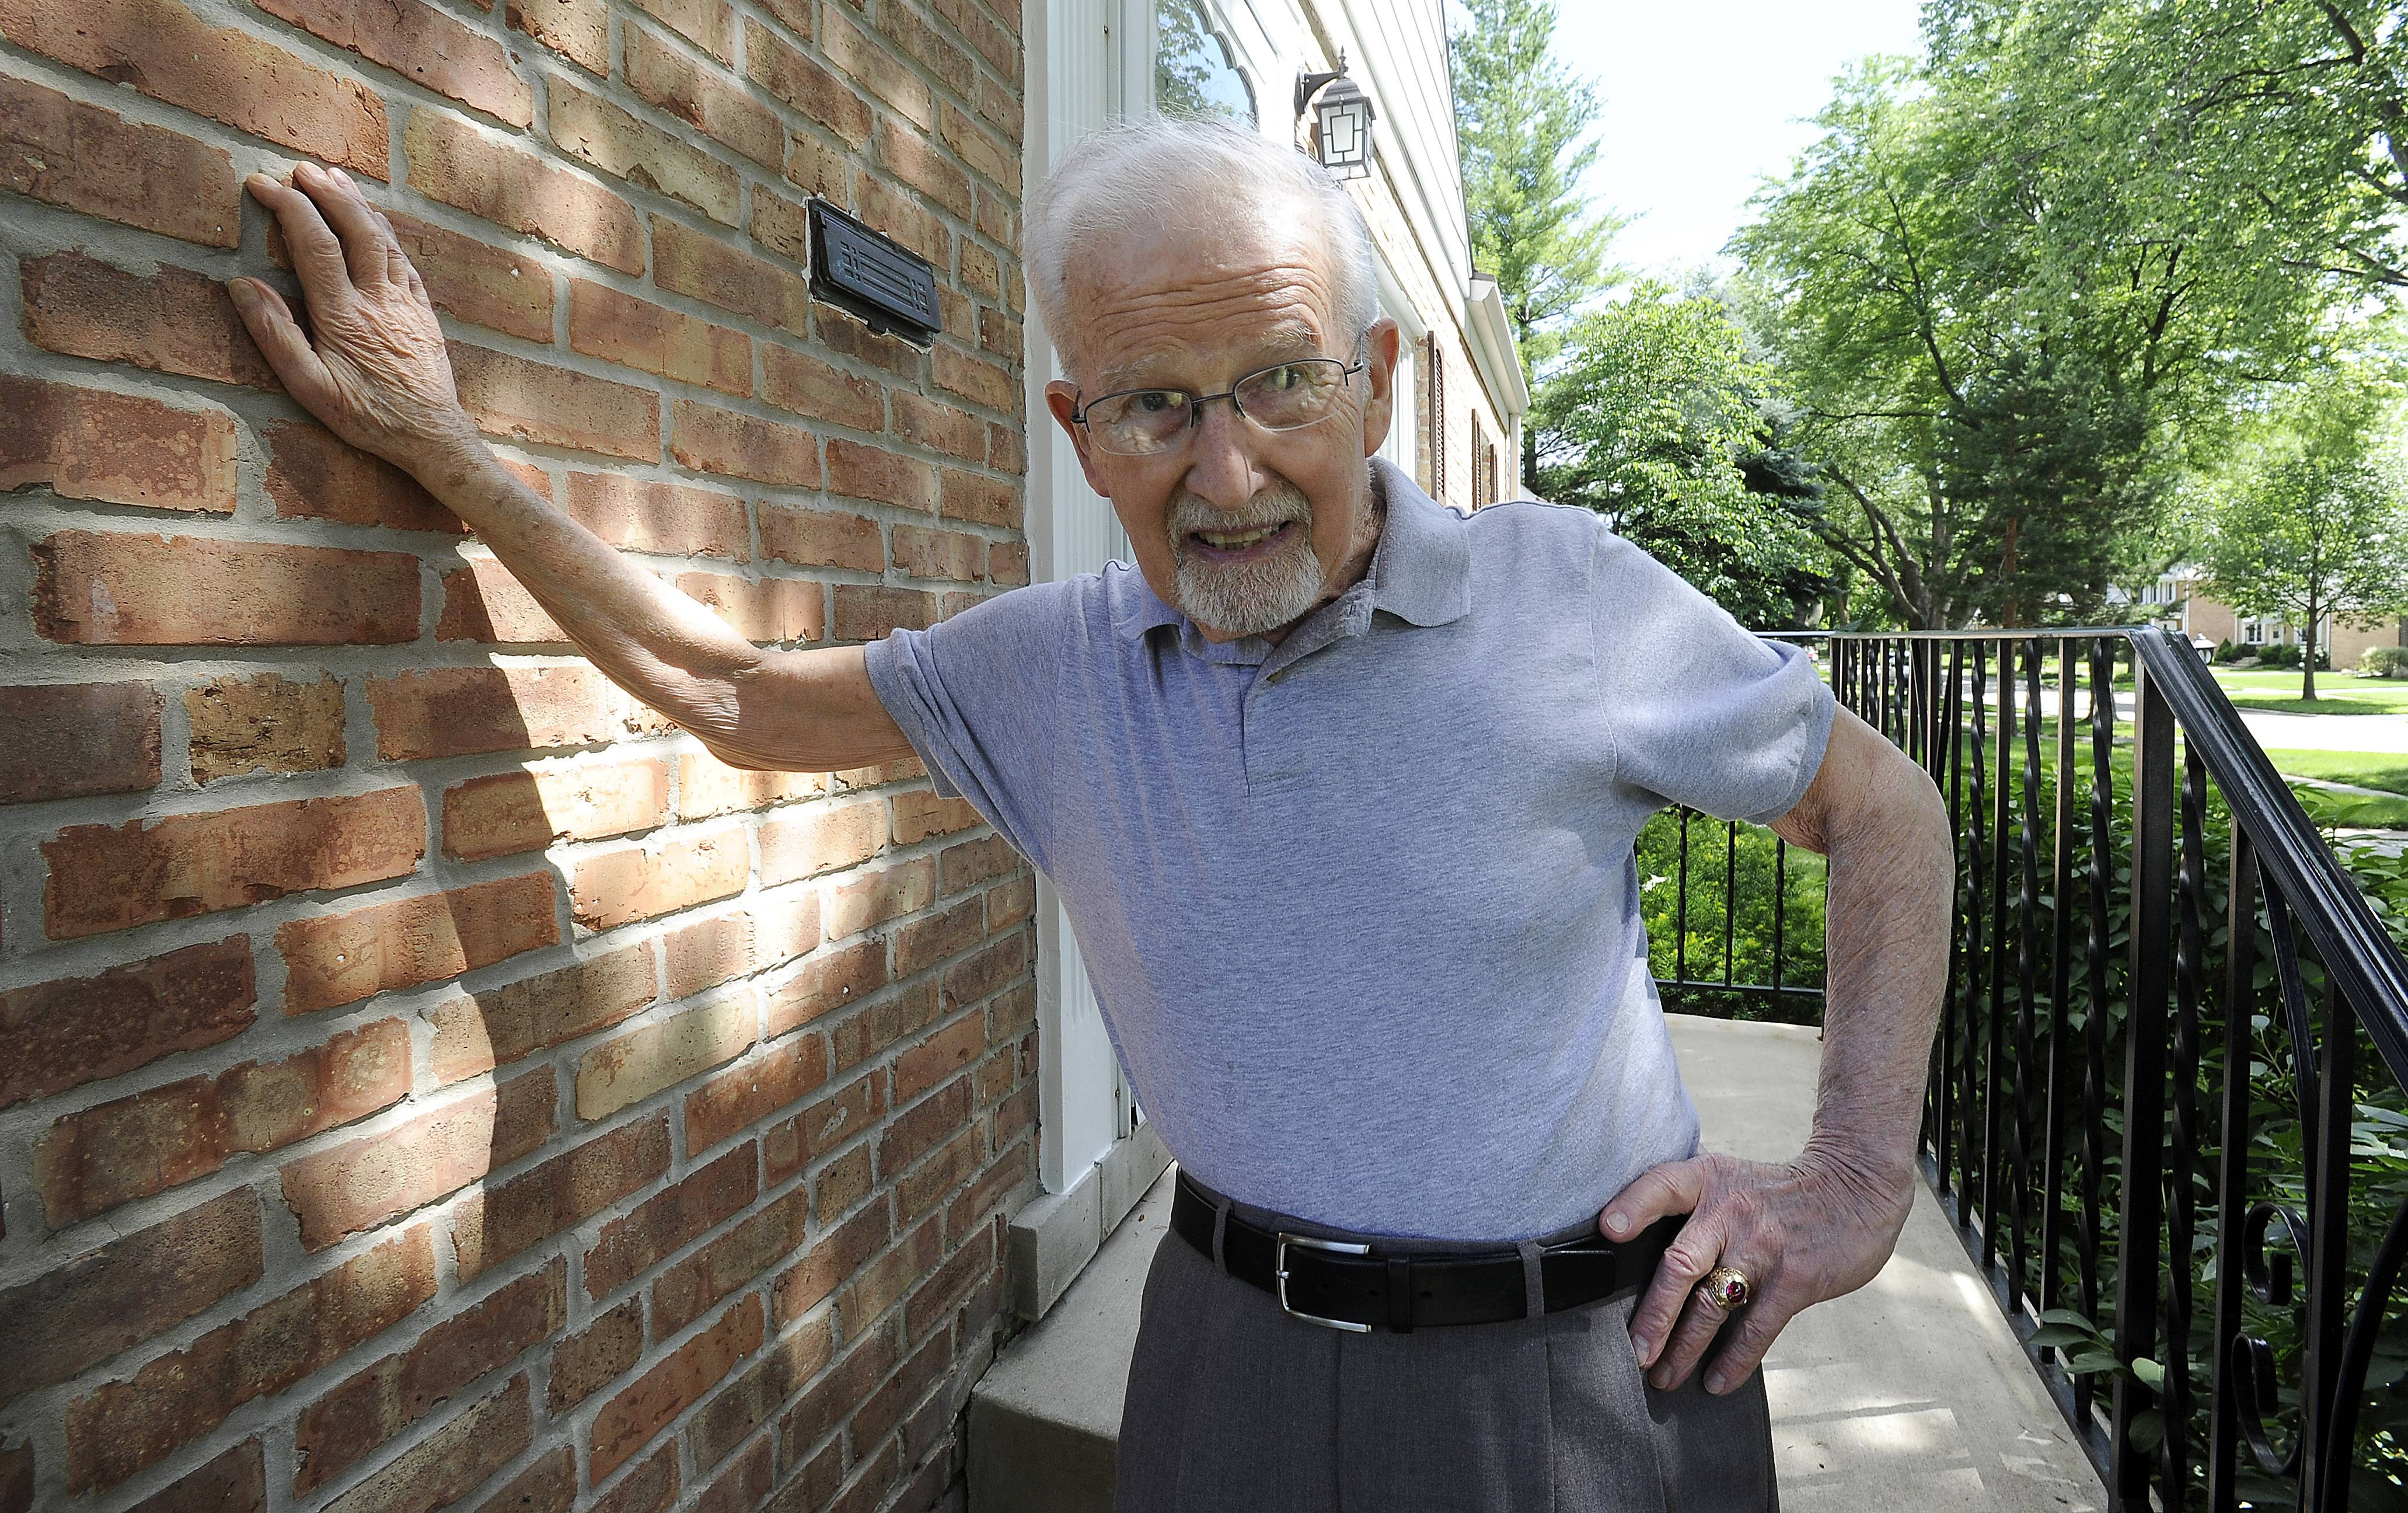 Henry Blim, a 90-year-old veteran of World War II, moved to Mount Prospect in the early 1950s.